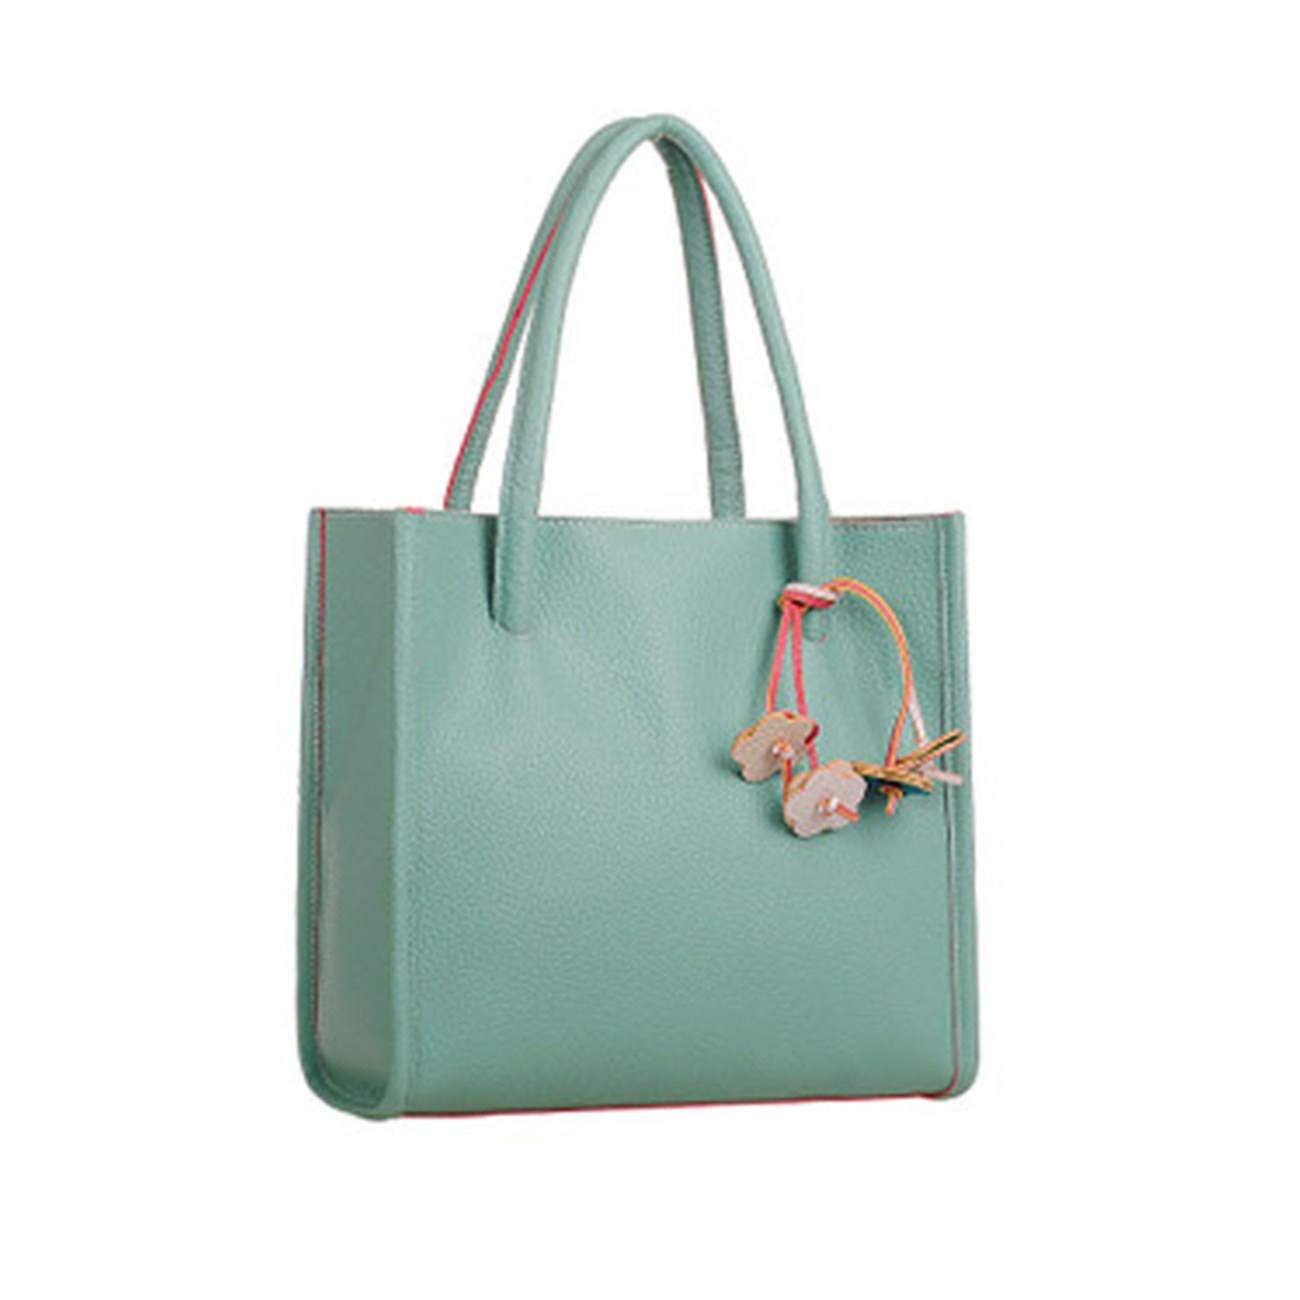 Big Sale! Fashion Elegant Girls Handbags PU Leather Shoulder Bag Clutches Candy Color Flowers Women Totes Purse (Green)